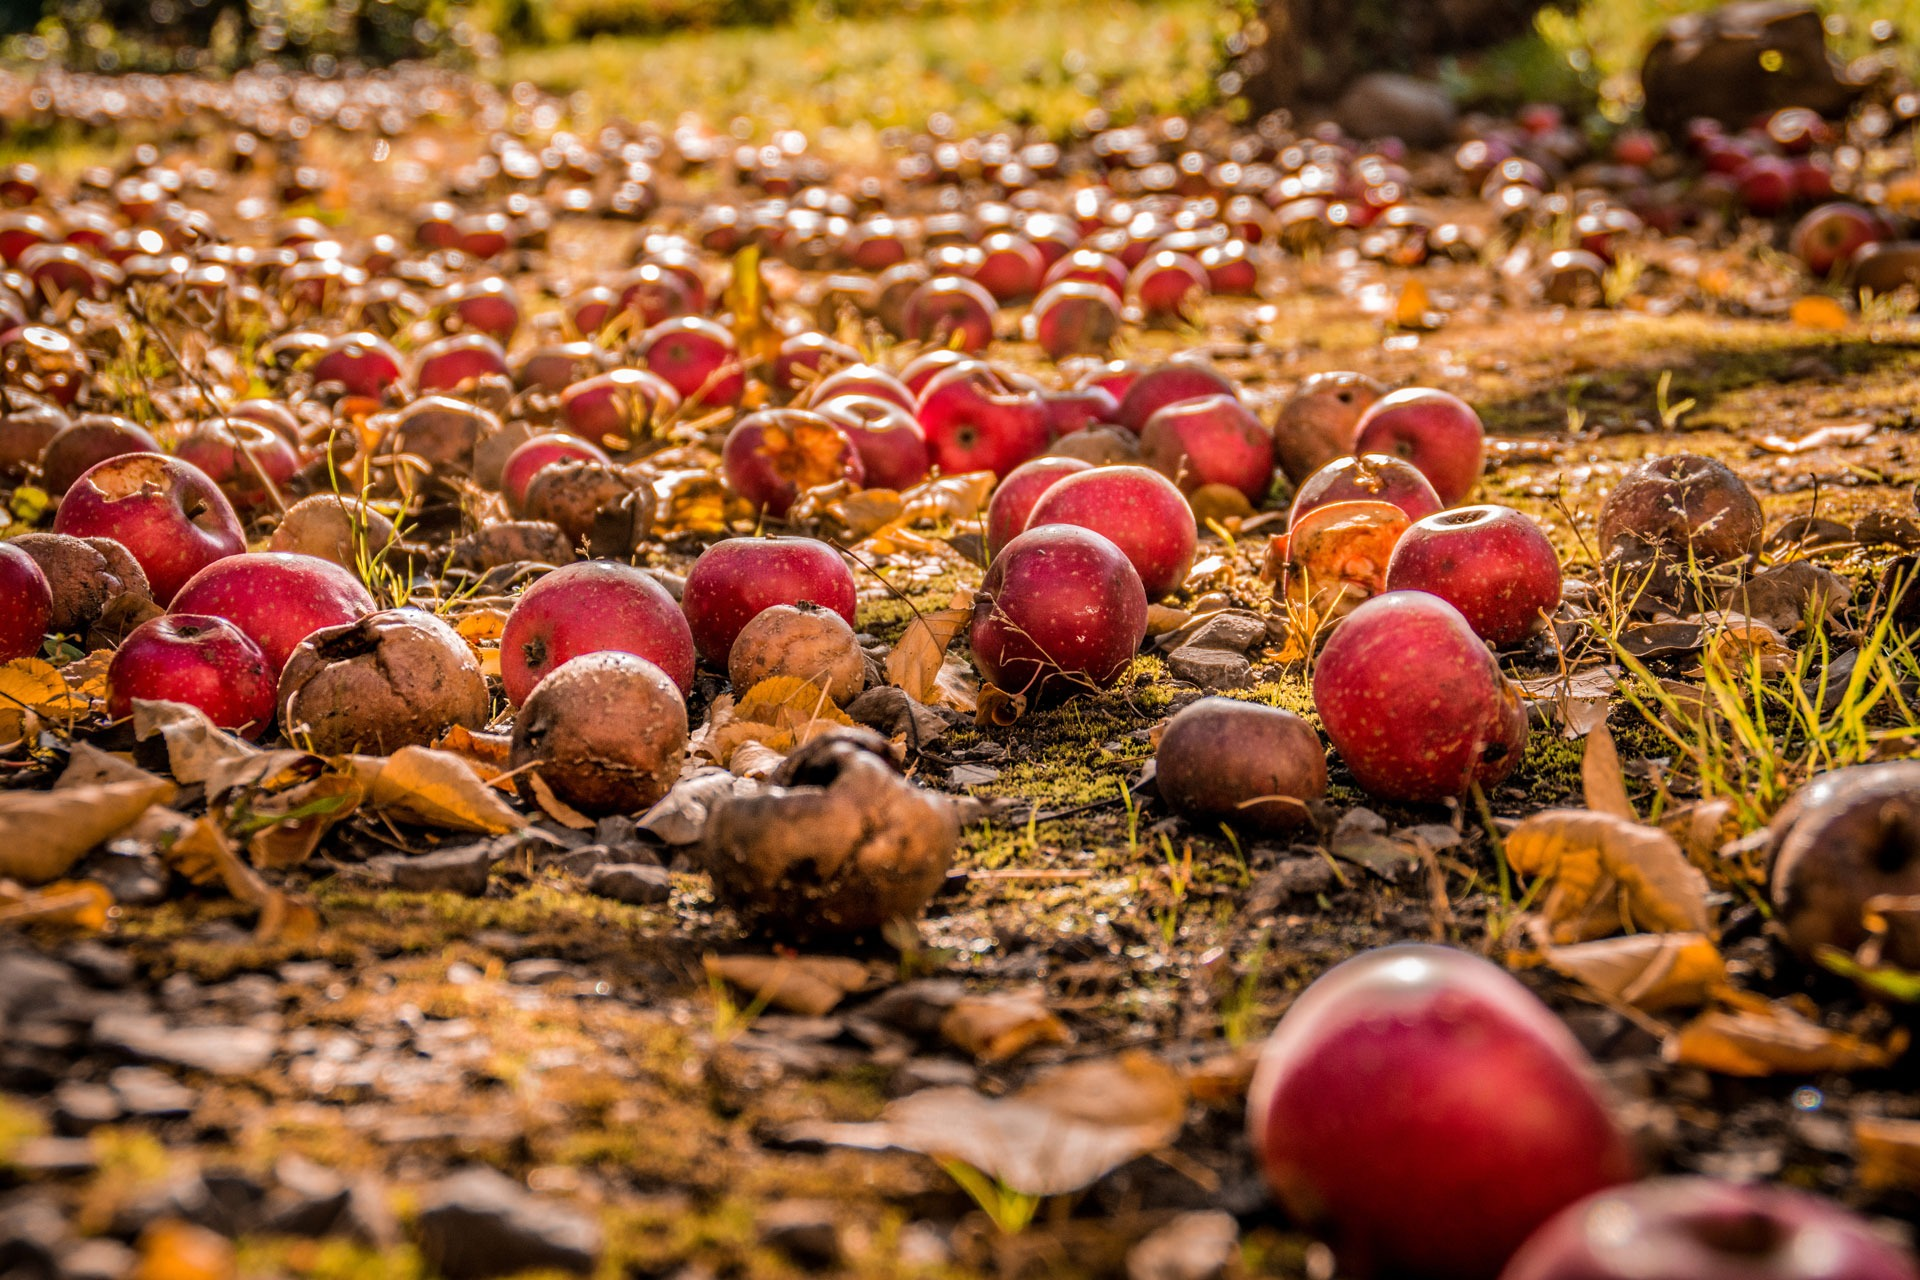 Rotting apples on the ground